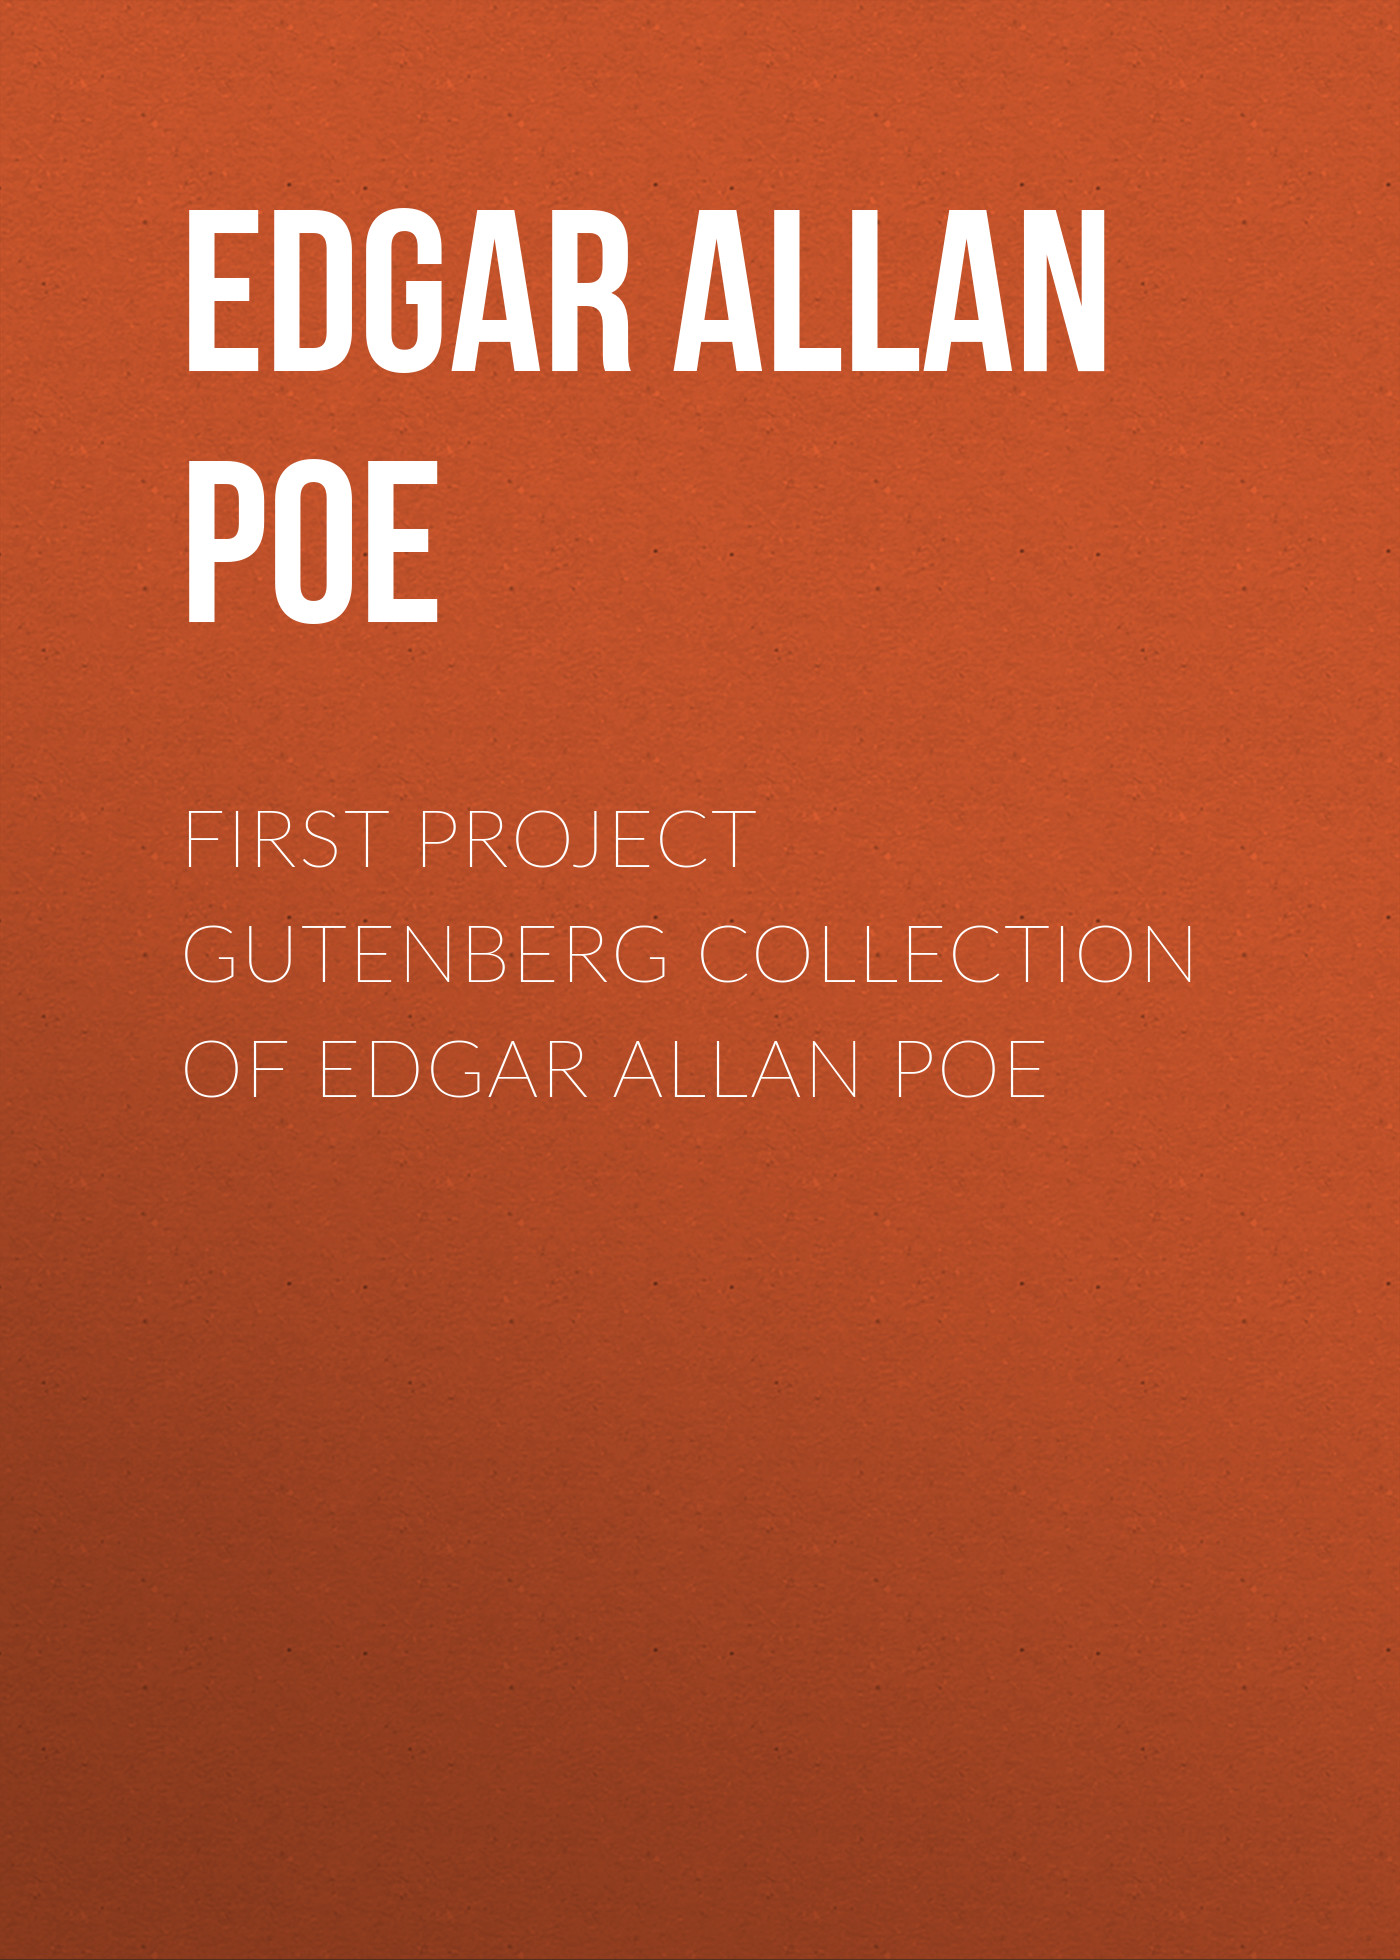 Эдгар Аллан По First Project Gutenberg Collection of Edgar Allan Poe edgar allan poe the best of edgar allan poe volume 4